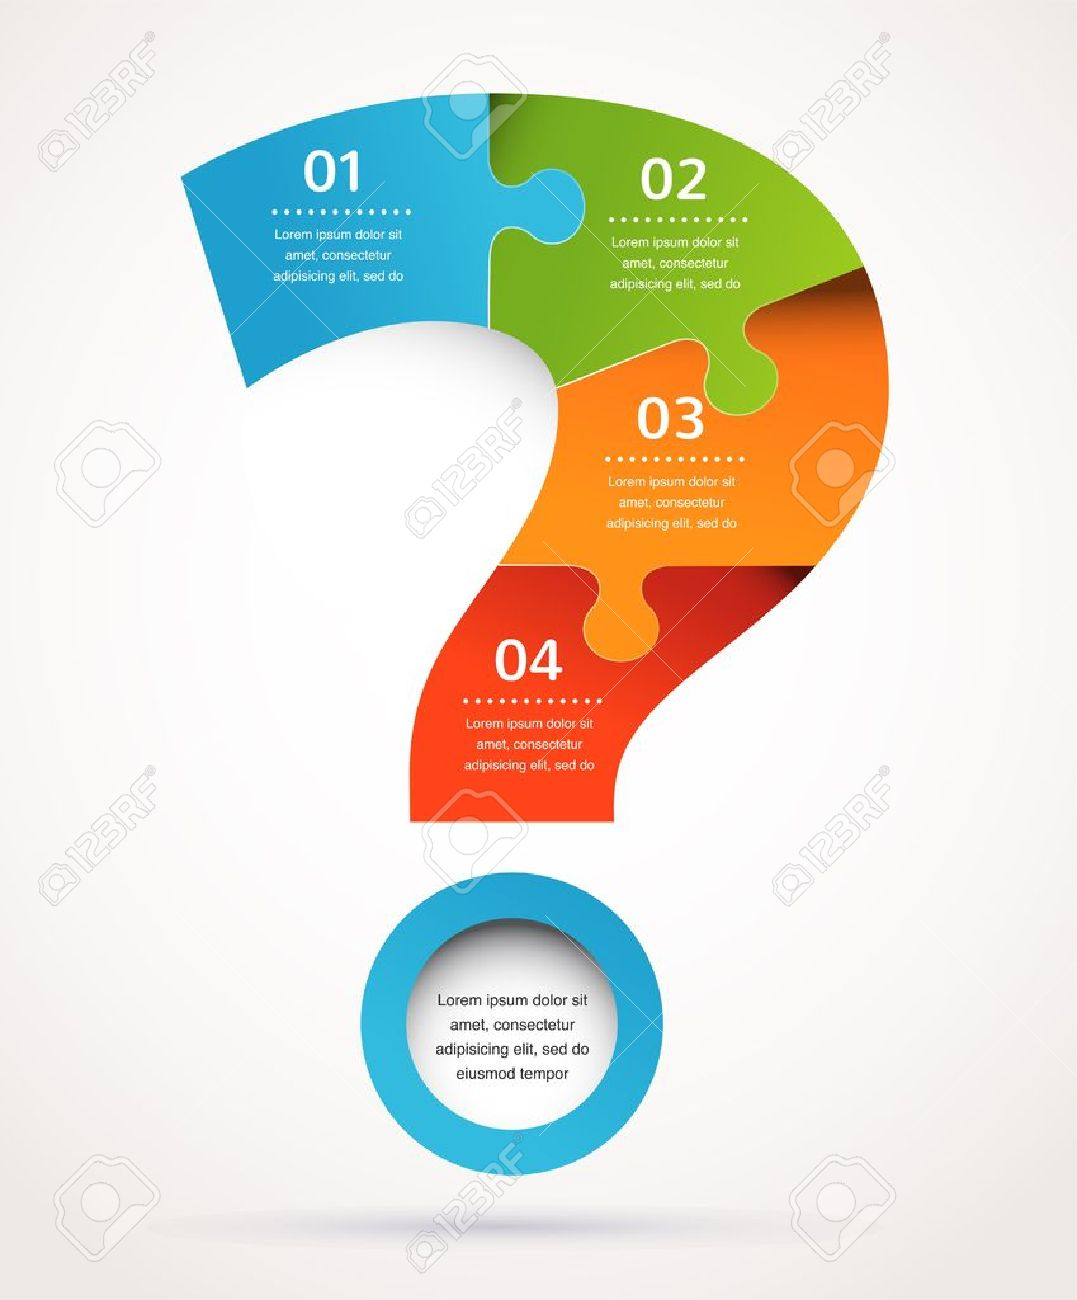 problem solving stock photos images royalty problem solving problem solving question mark abstract design and infographics background